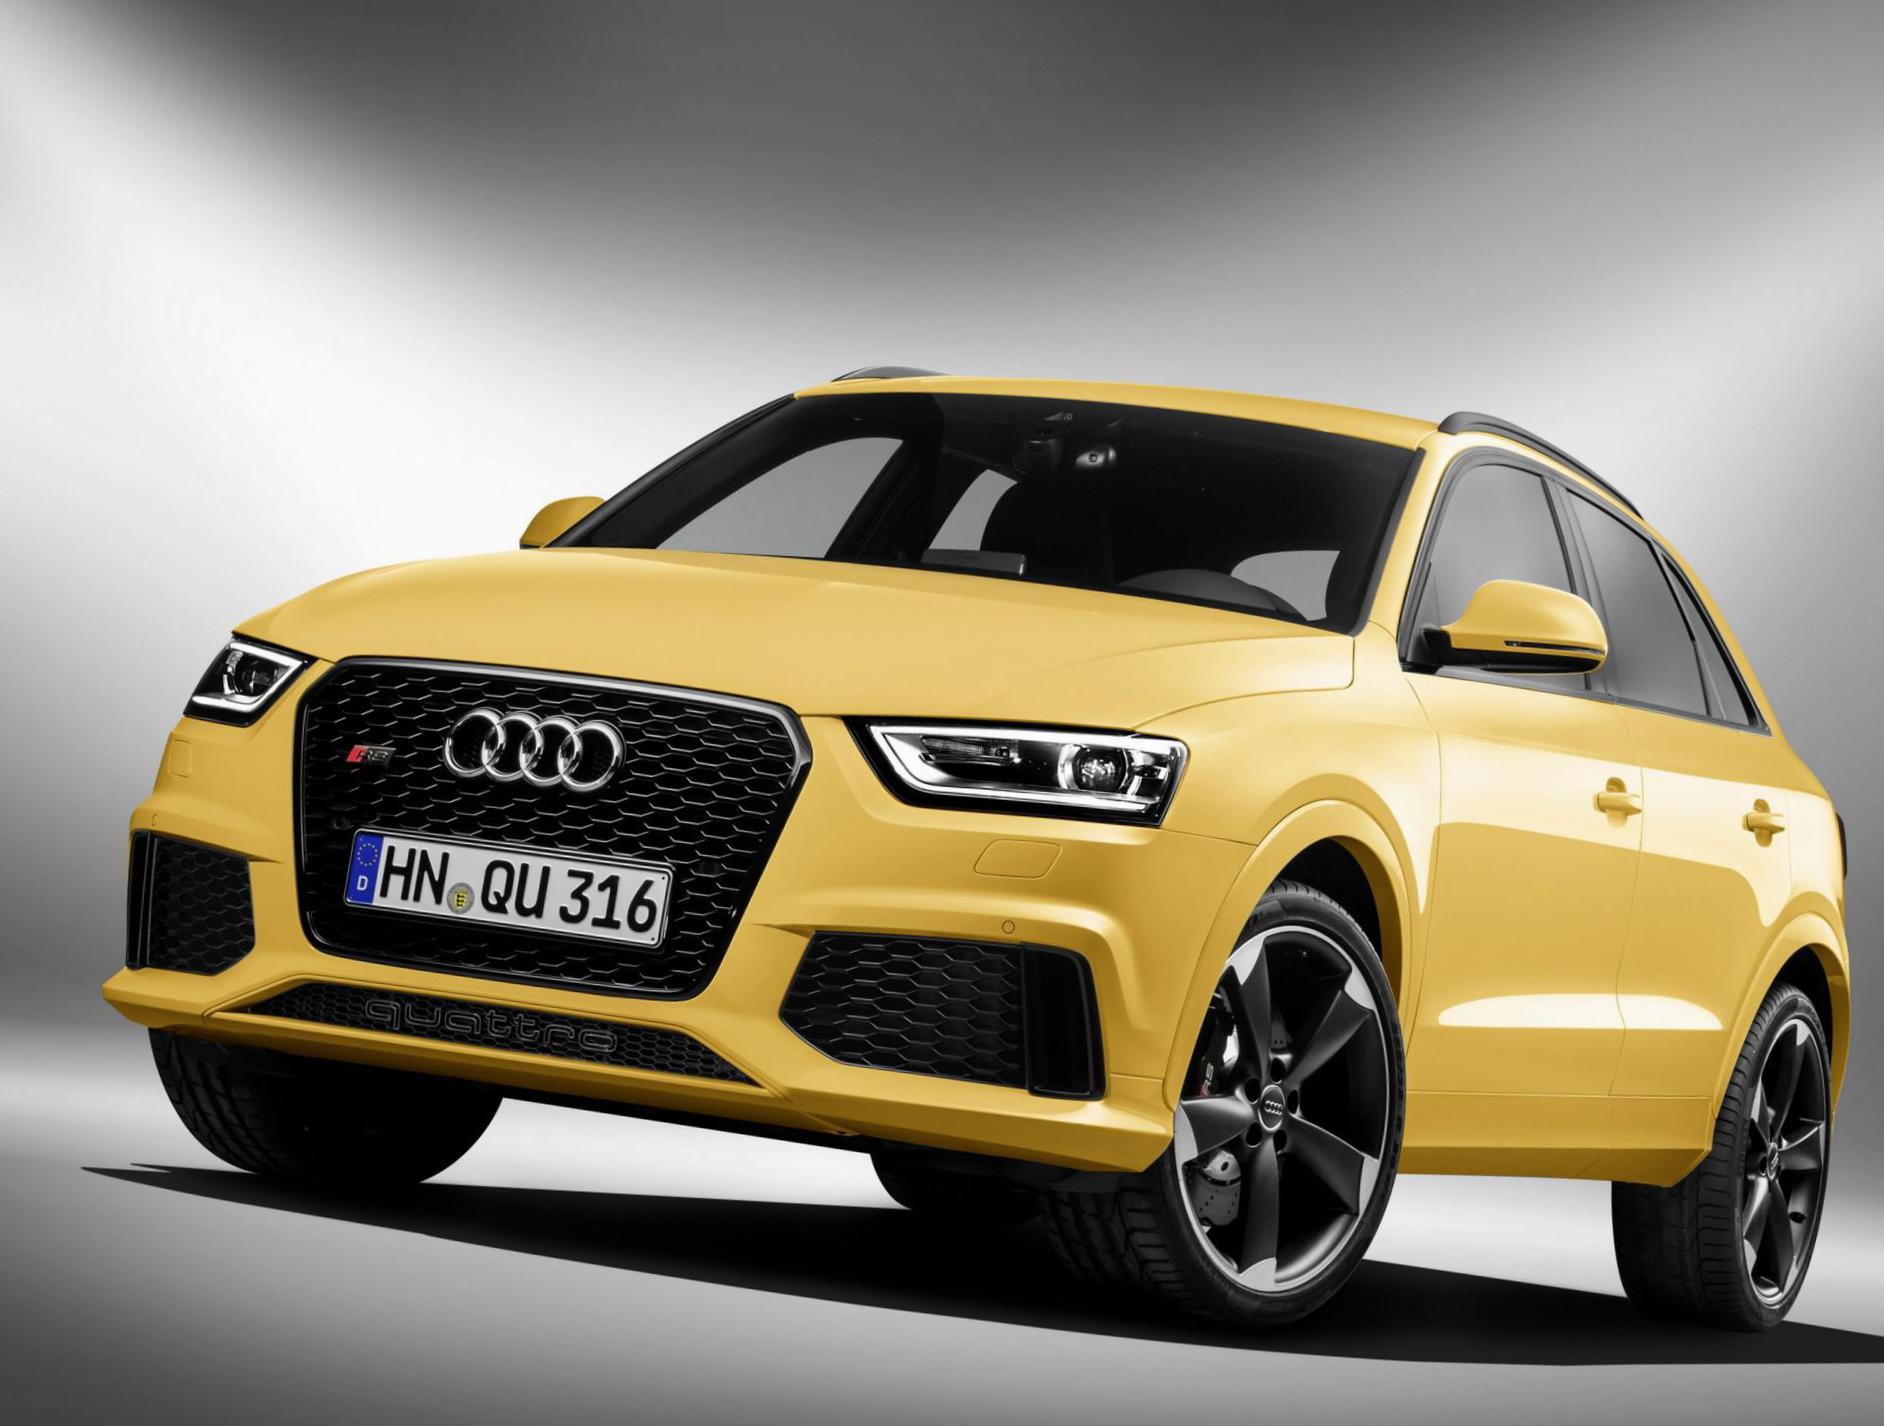 RS Q3 Audi approved 2013